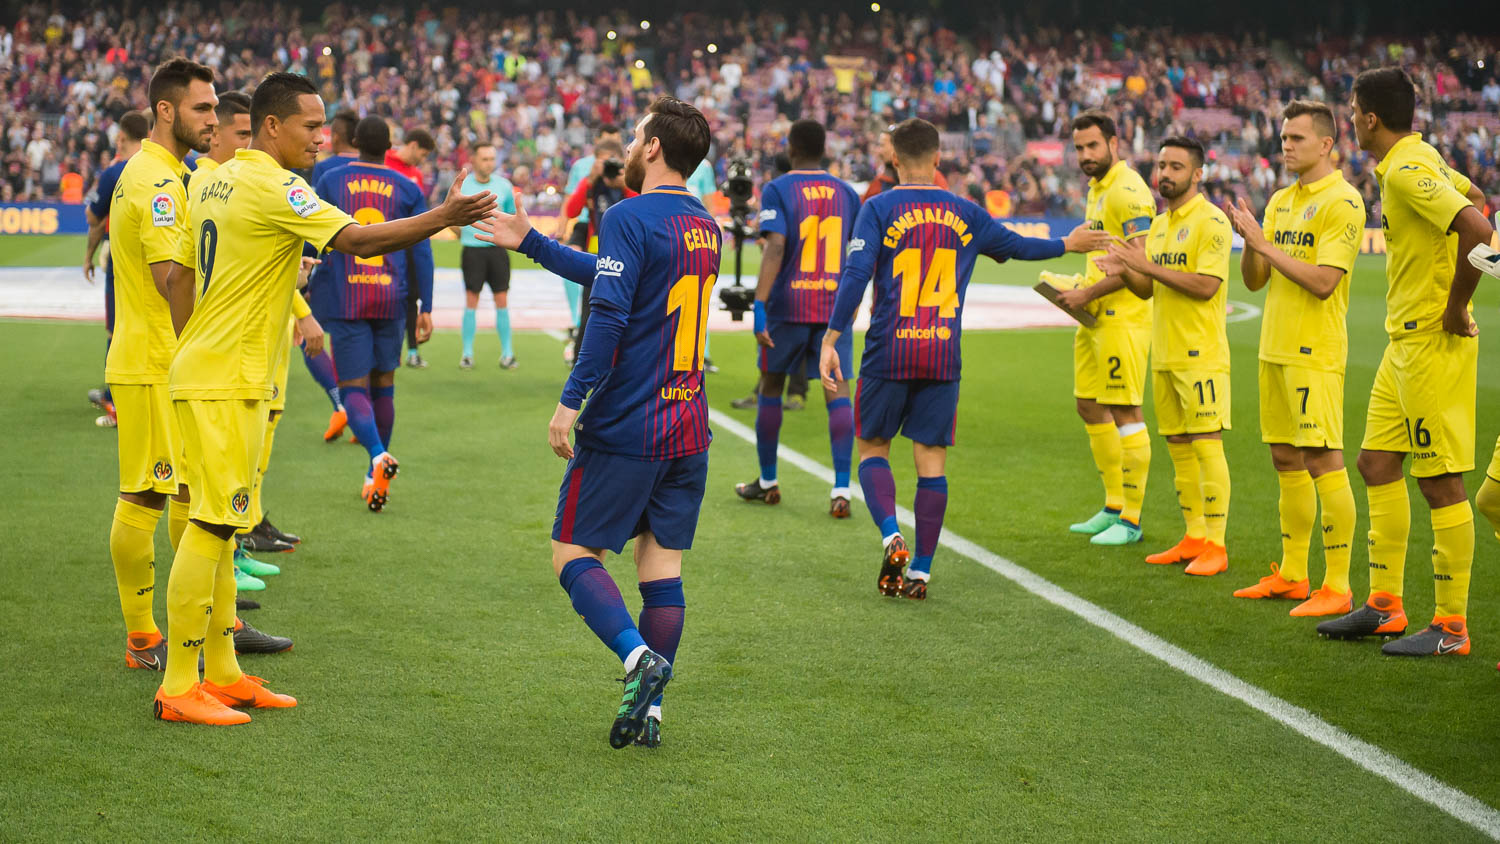 """Lionel Messi walks onto the pitch against Villareal: On the front of the shirts, under the Rakuten Logo, were the words """"TRUE CHAMPIONS,"""" recognizing the incredible importance that mothers play..."""